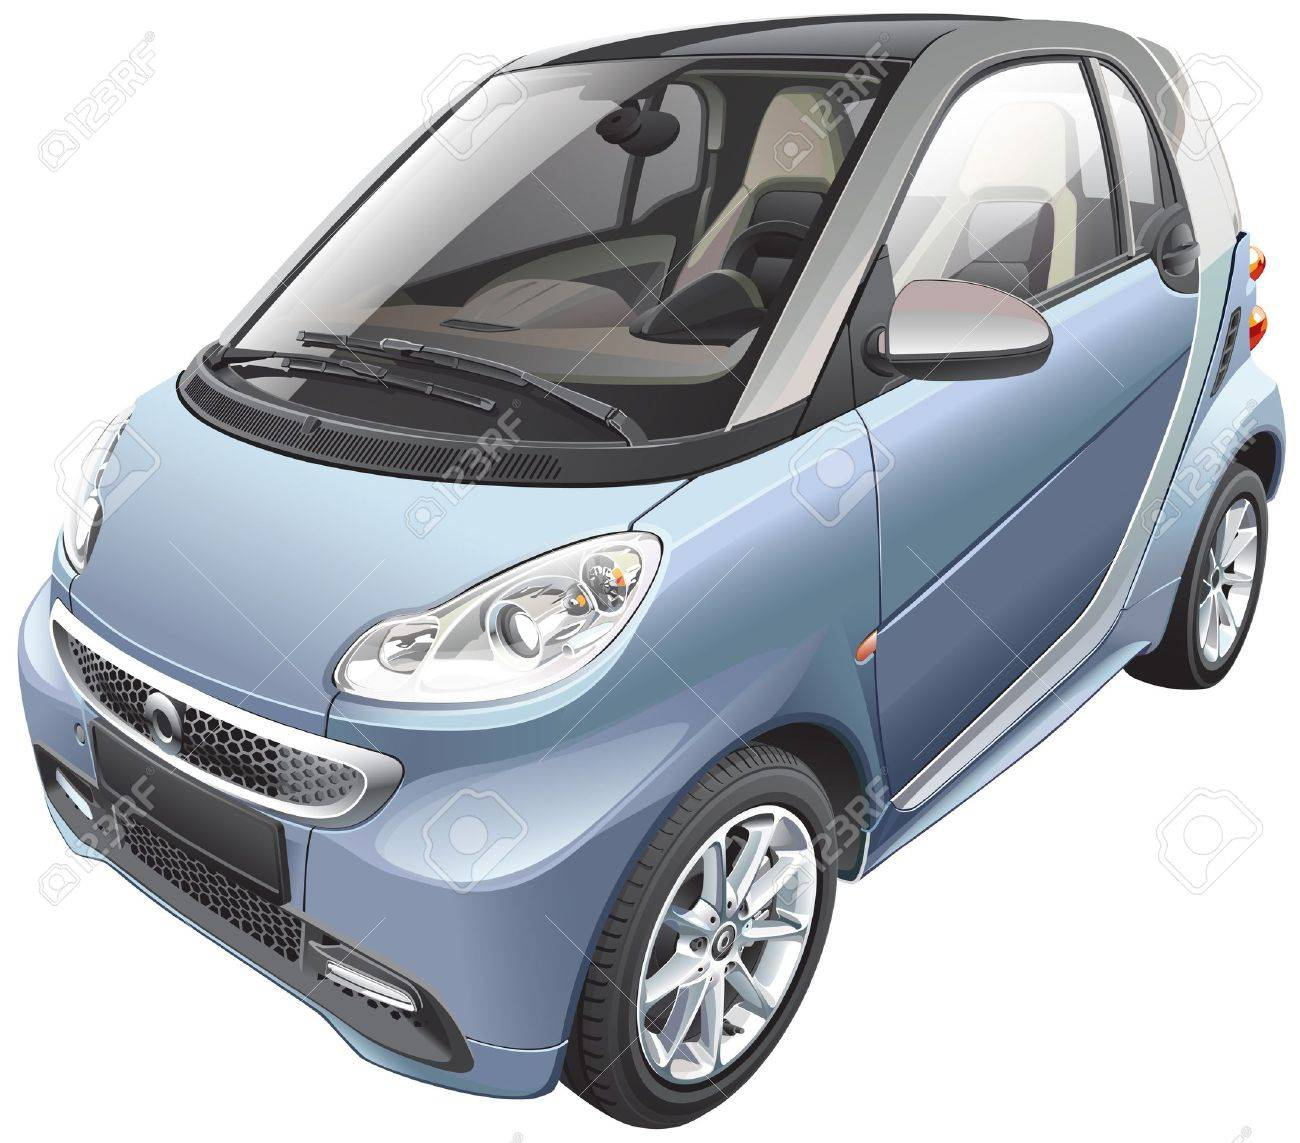 Detail image of modern subcompact car Stock Vector - 17313871